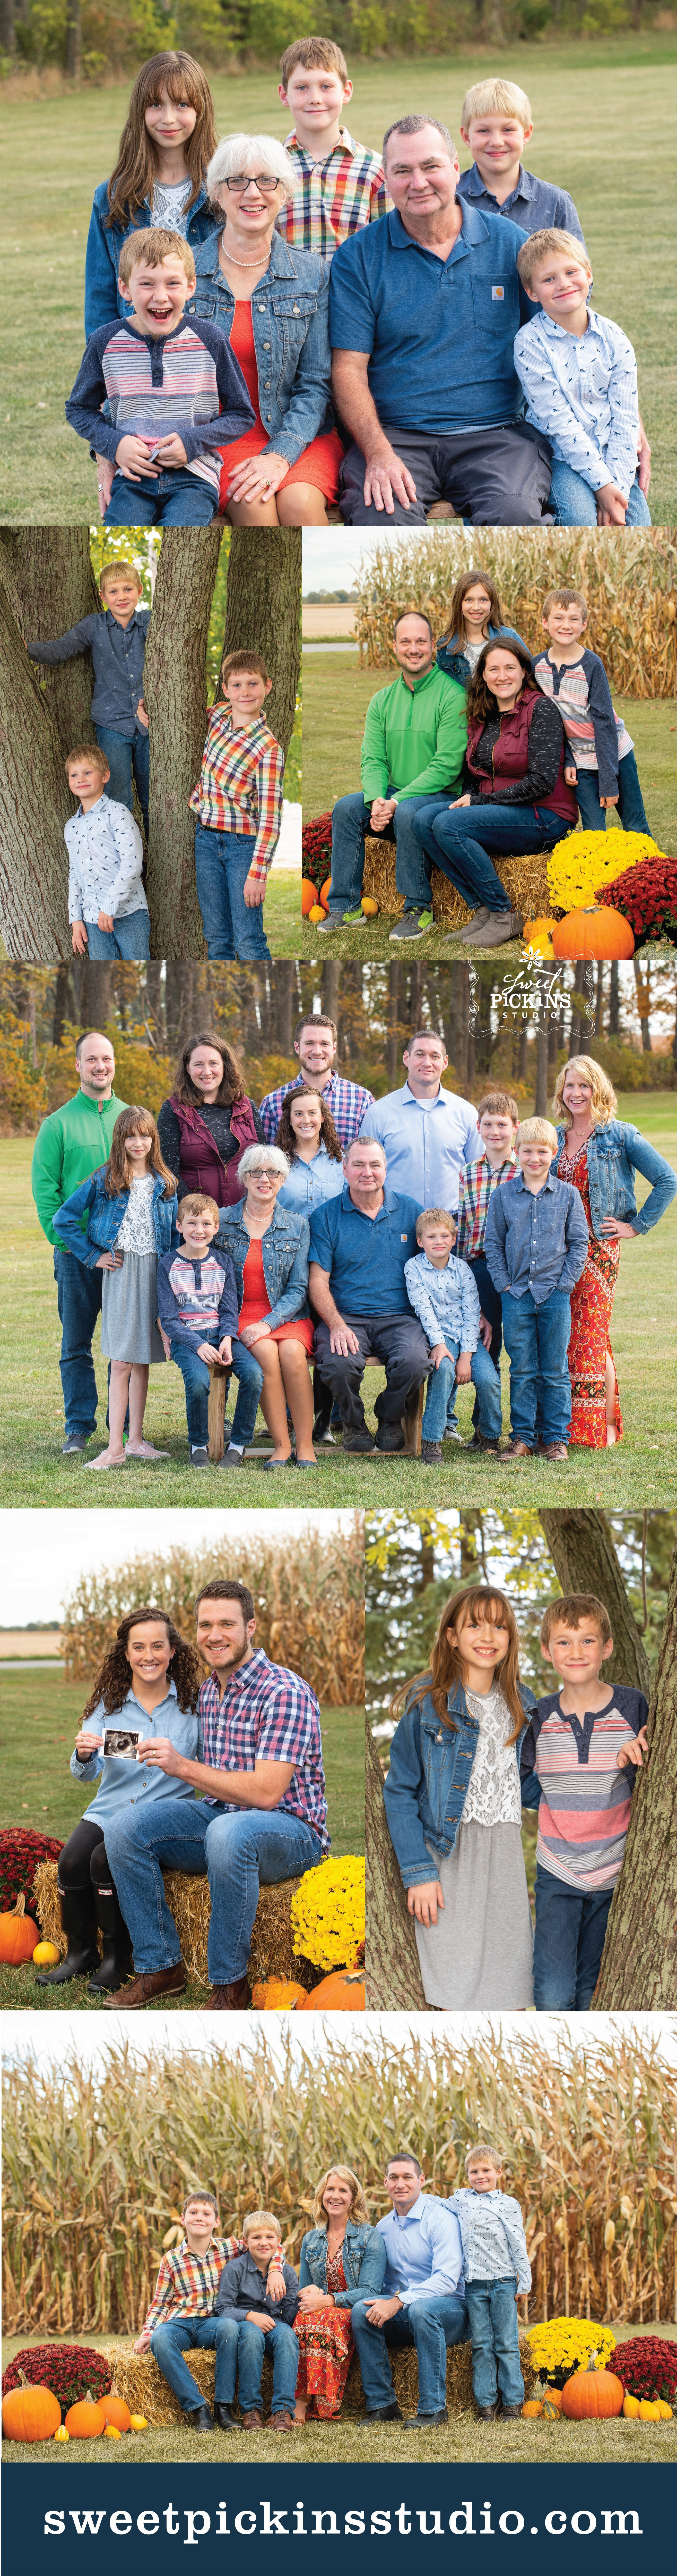 Extended Large Family #grandkidsphotography Extended Family Portrait Session by Sweet Pickins Studio Photographer Sweet Pickins Studio   cousins posing on field rock   grandkids with grandparents   family reunion on farm in fall #extendedfamilyphotography